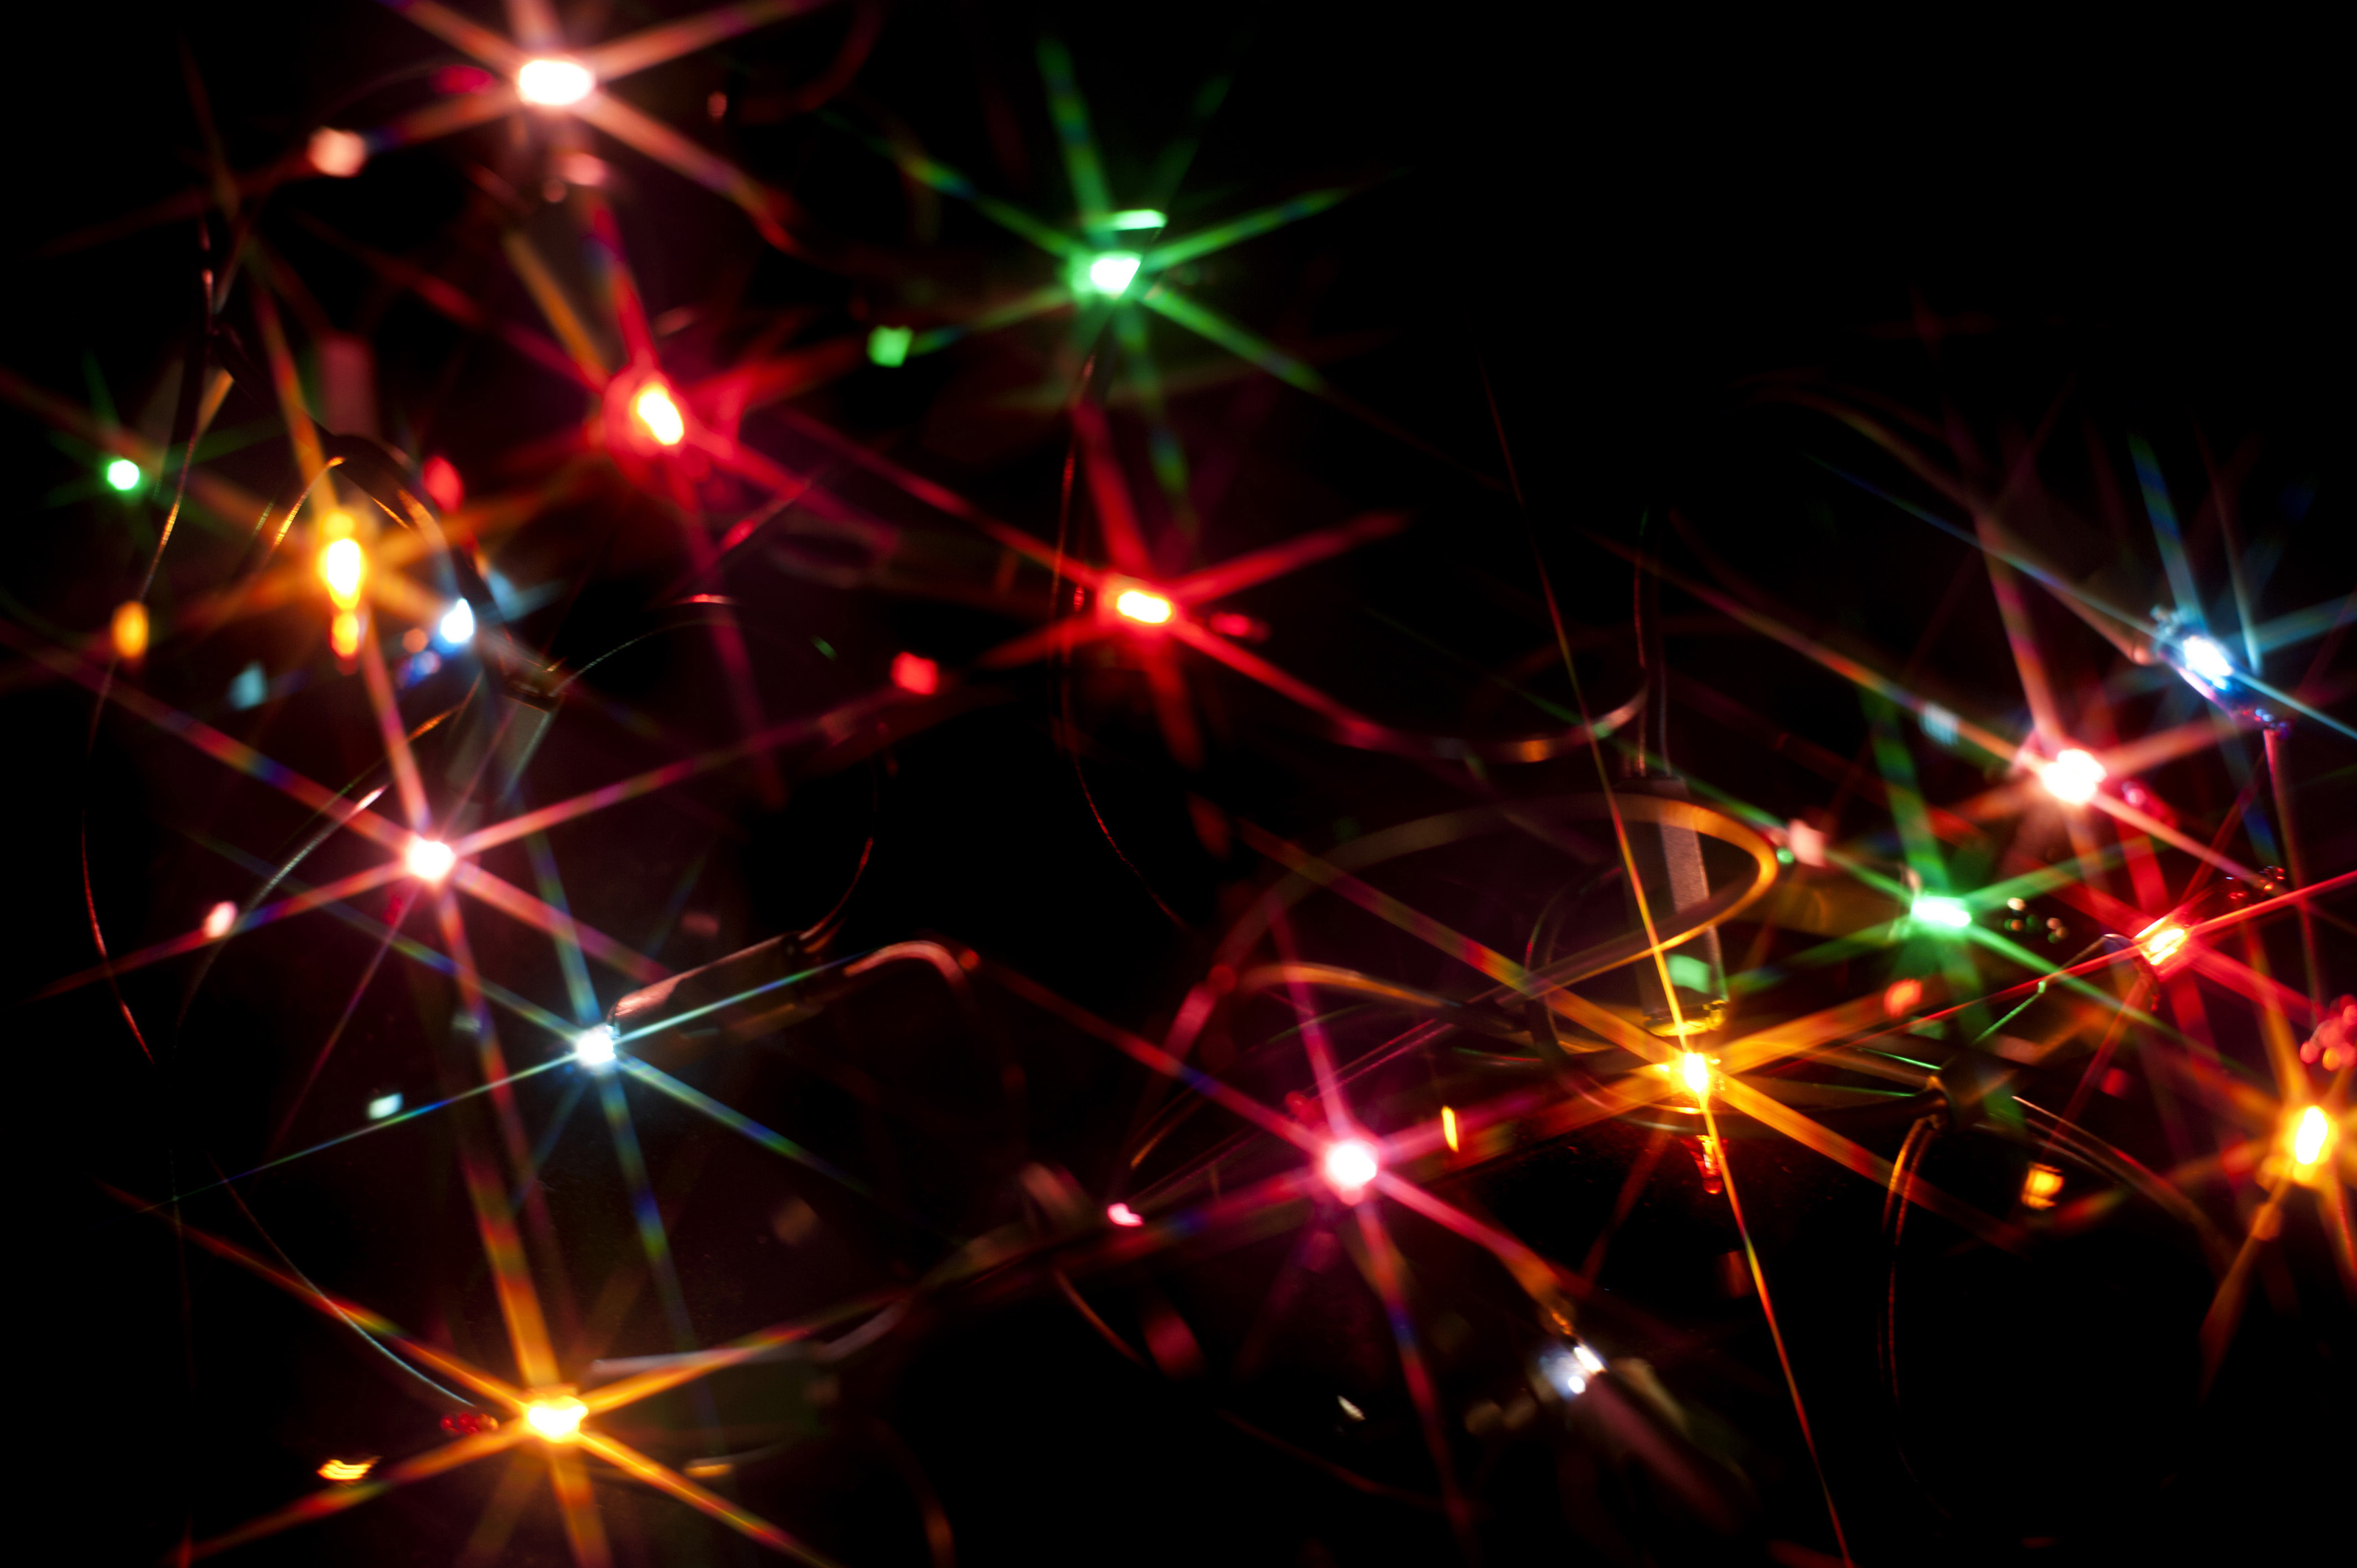 accept license and download image - Sparkling Christmas Lights